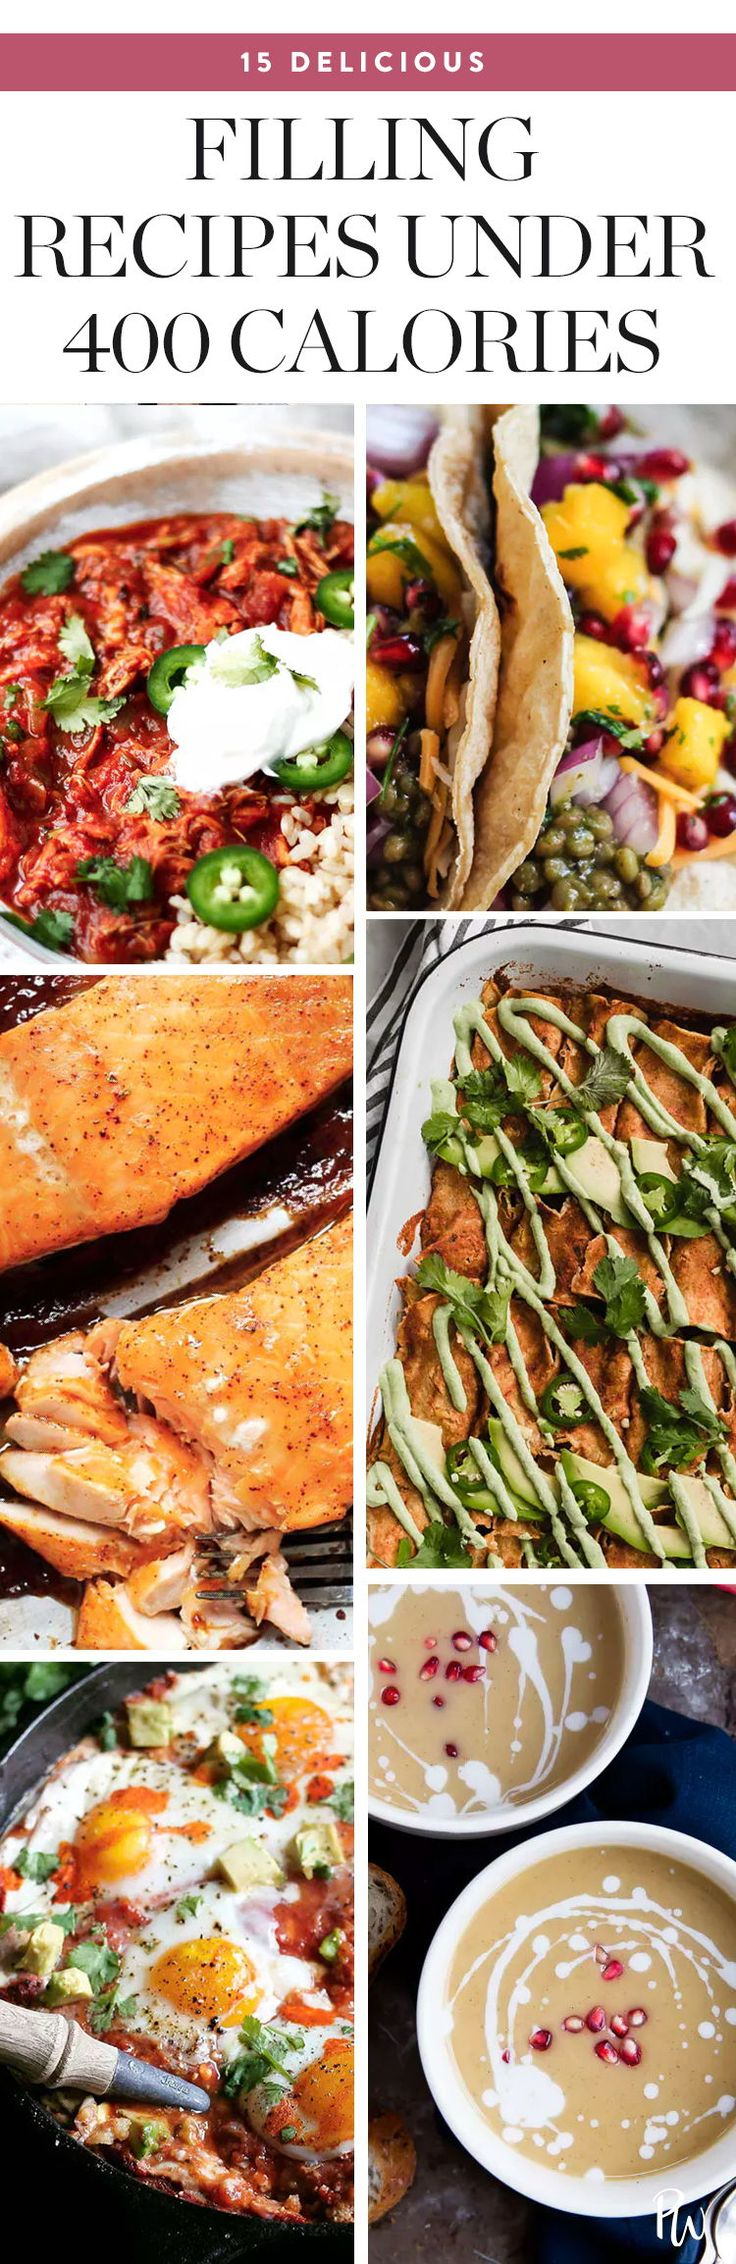 15 Delicious and Filling Recipes That Are Under 400 Calories. #healthyrecipes #food #recipes #healthyfood #healthyrecipeideas